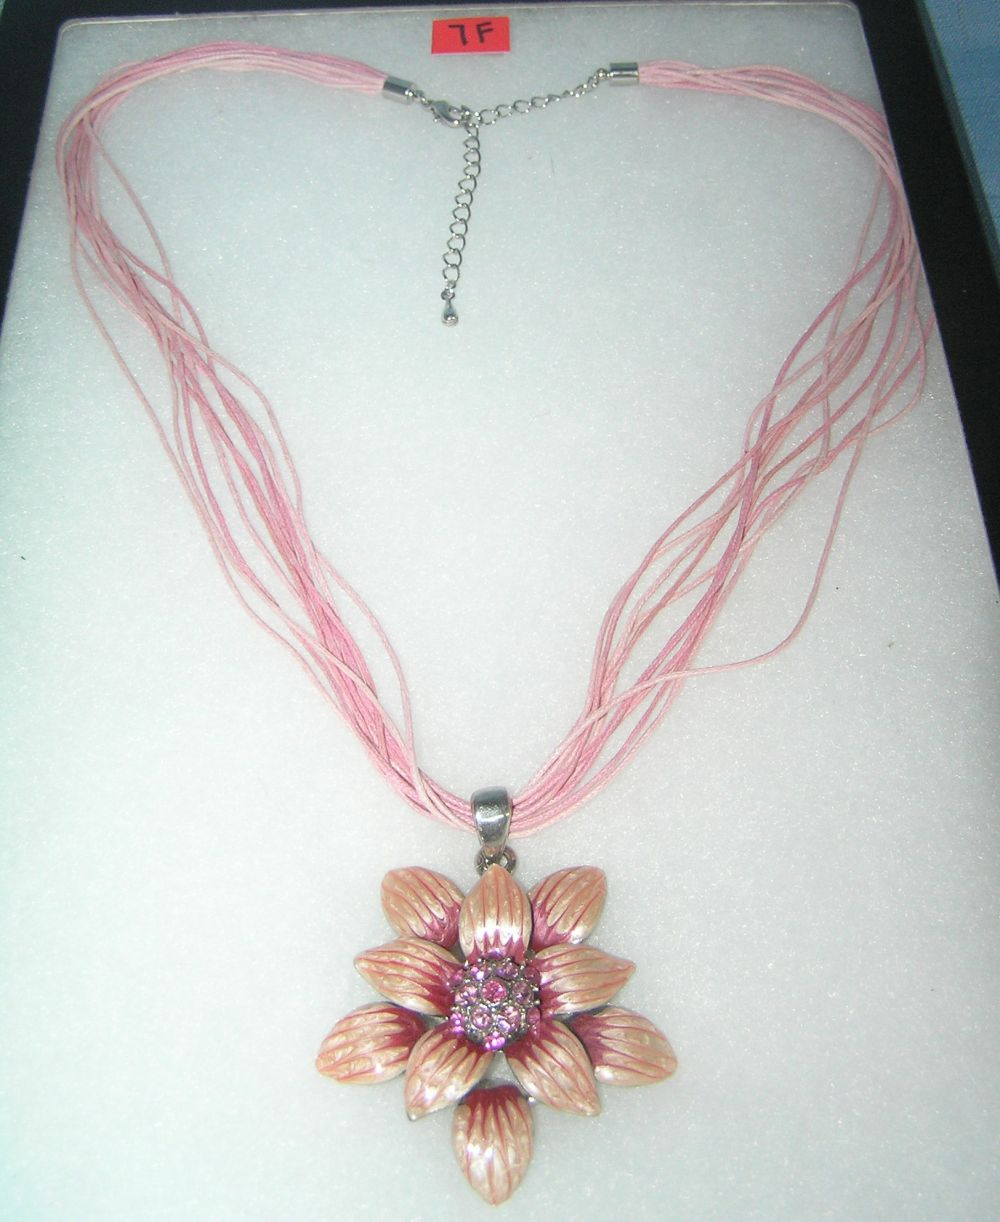 QUALITY COSTUME JEWELRY ENAMELED FLORAL NECKLACE